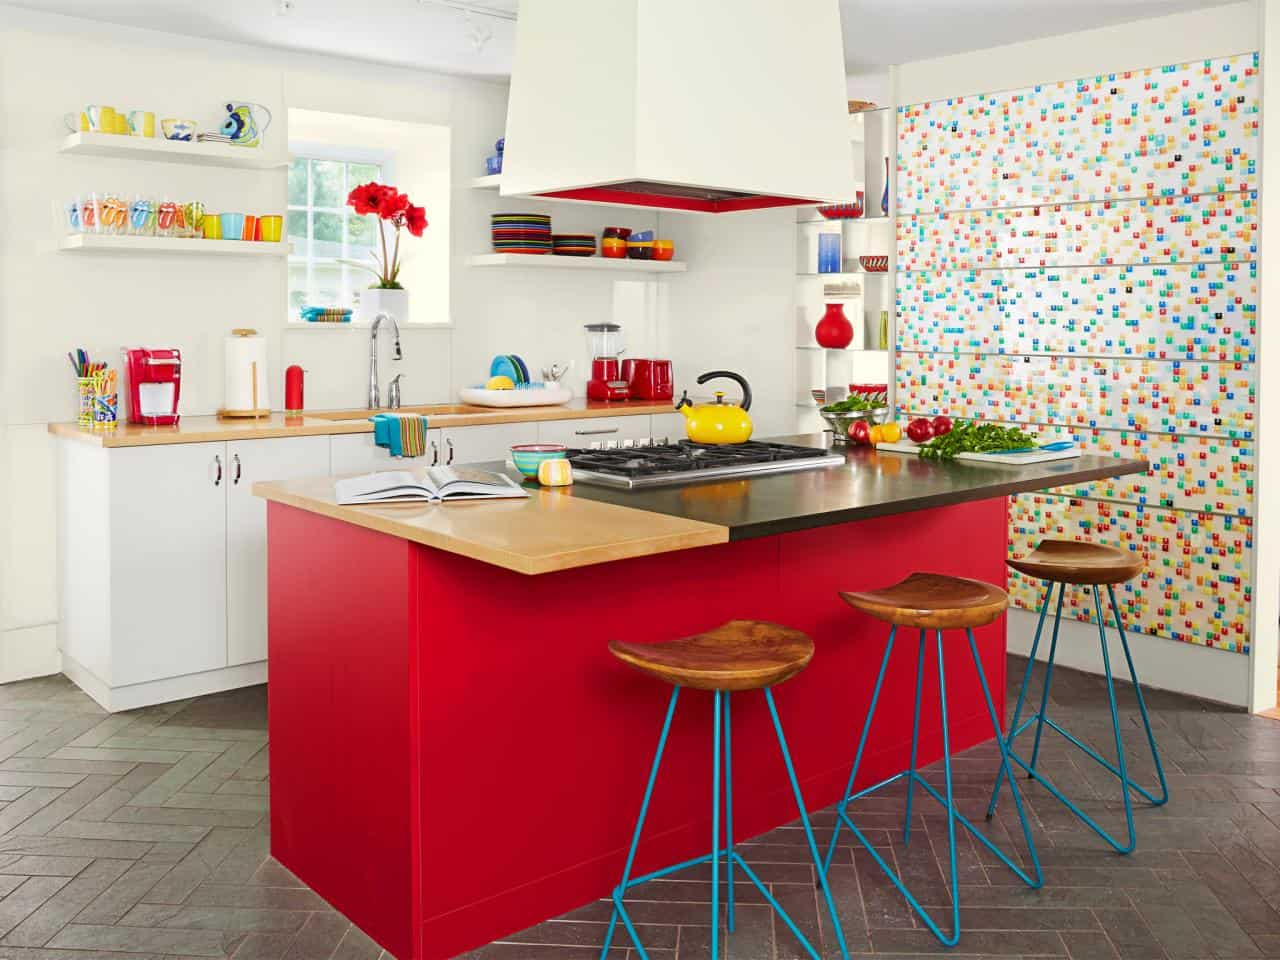 Bohemian Kitchen Trends For The Hippie In All Of Us